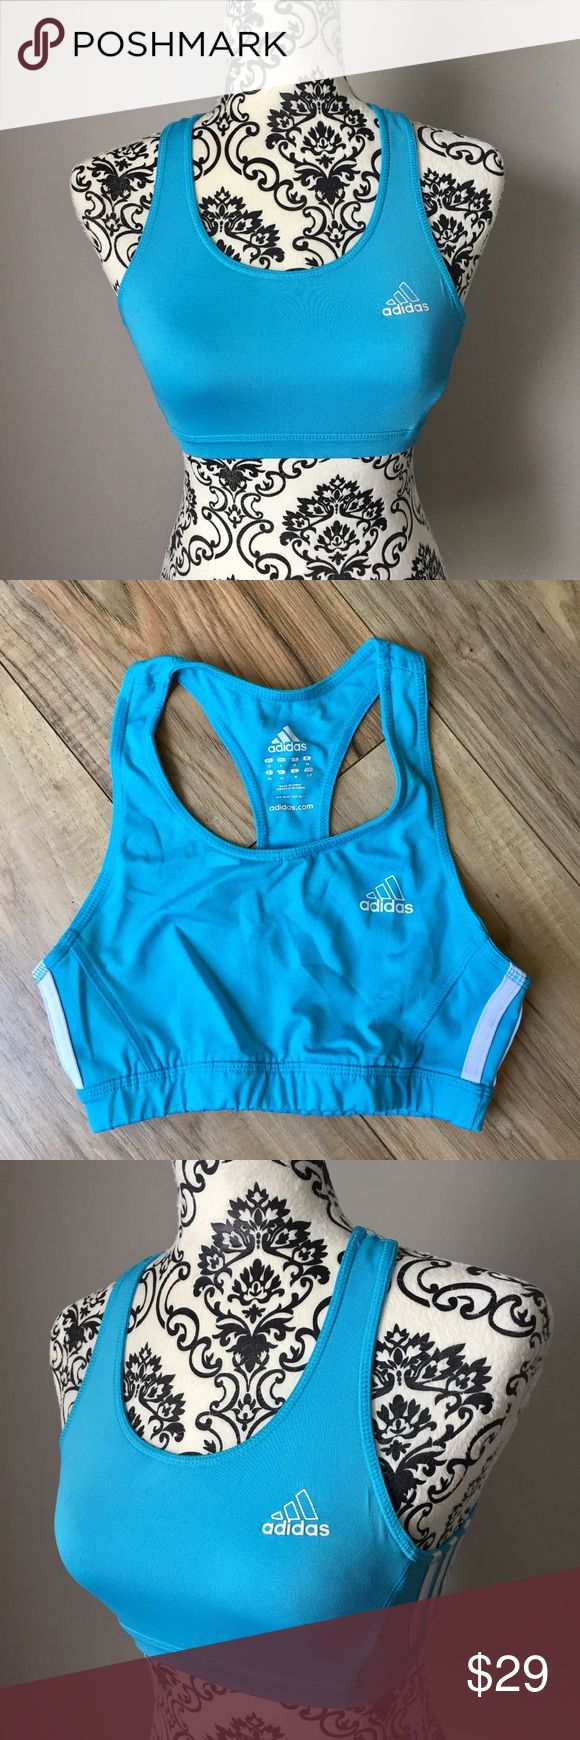 Adidas aqua blue and white sports bra size small Adidas aqua blue and white sports bra. Gently pre-loved with tons of life left and in EUC! Size small is true to size. 94% polyester / 6% spandex gives tons of stretch with some stability. adidas Intimates & Sleepwear Bras